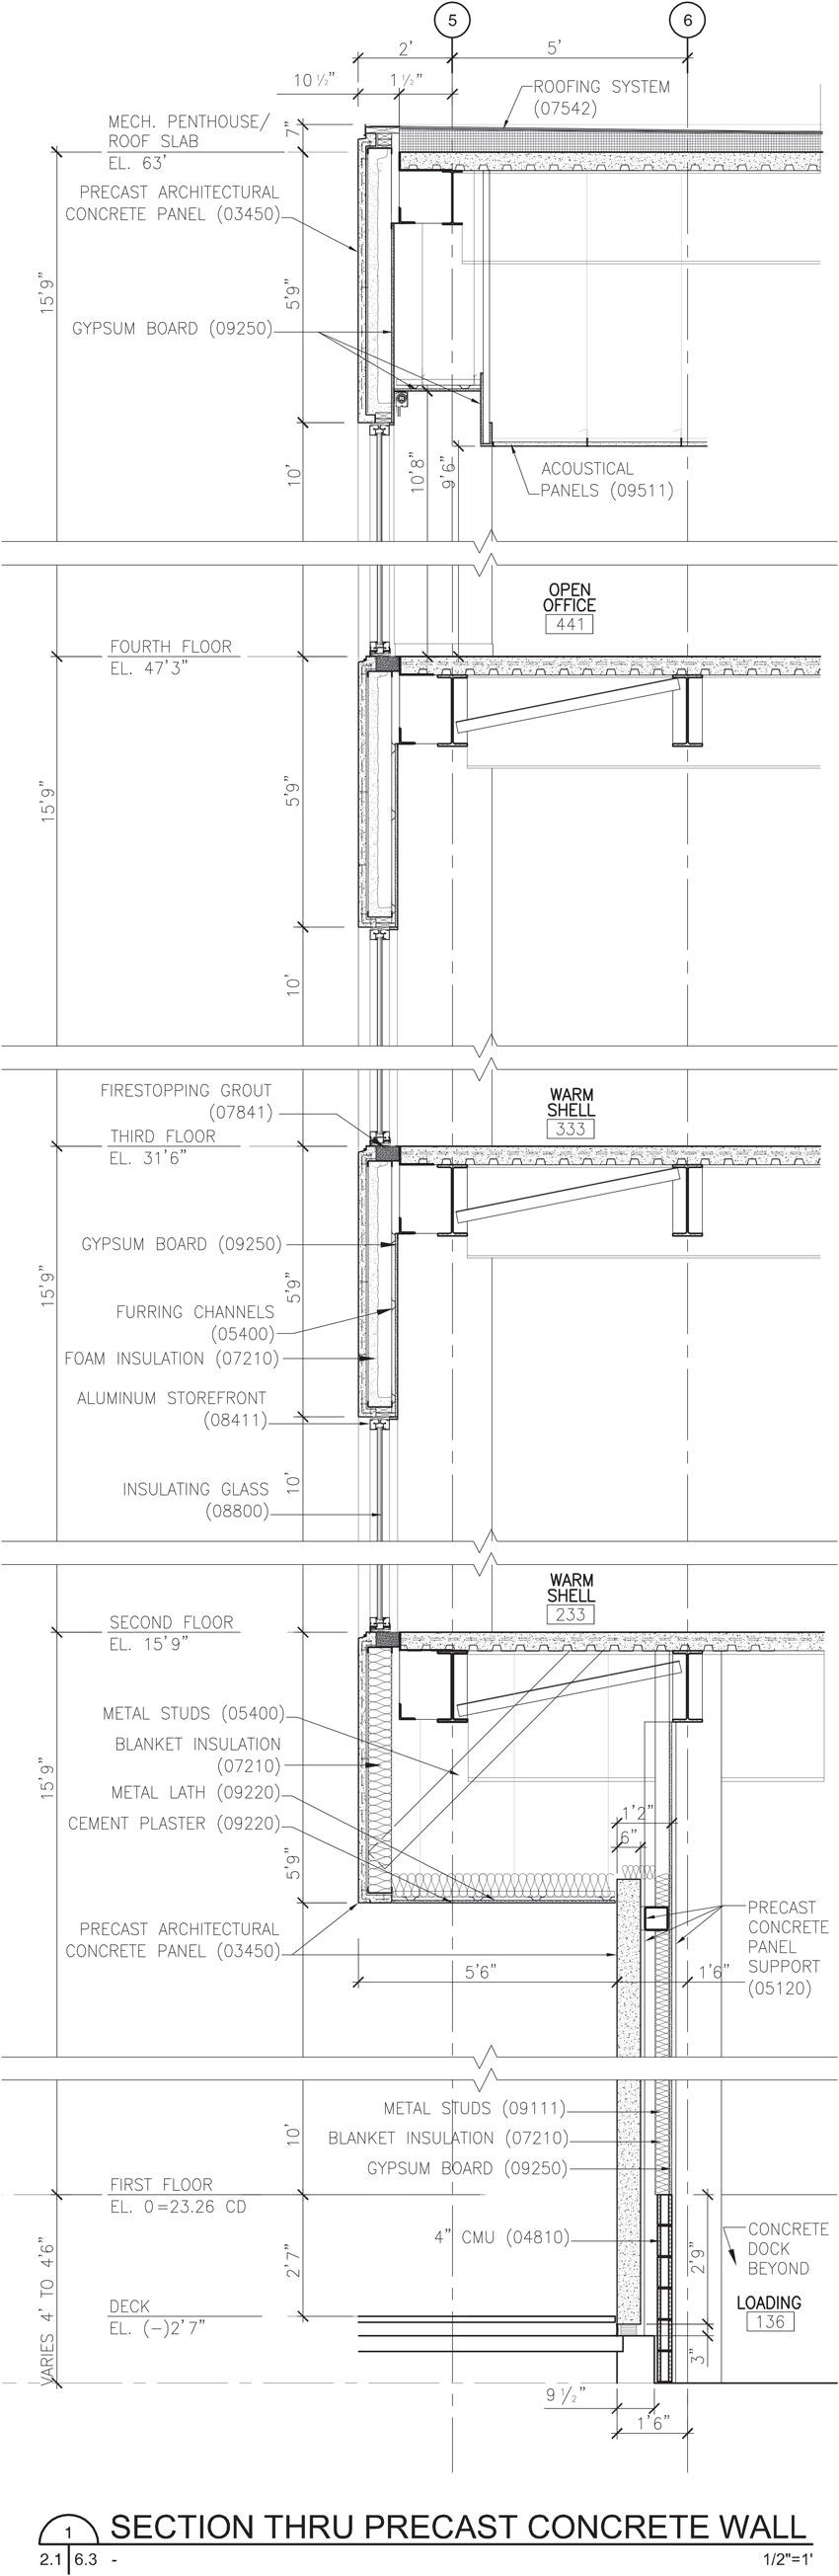 Drawing of Section Thru Precast concrete wall